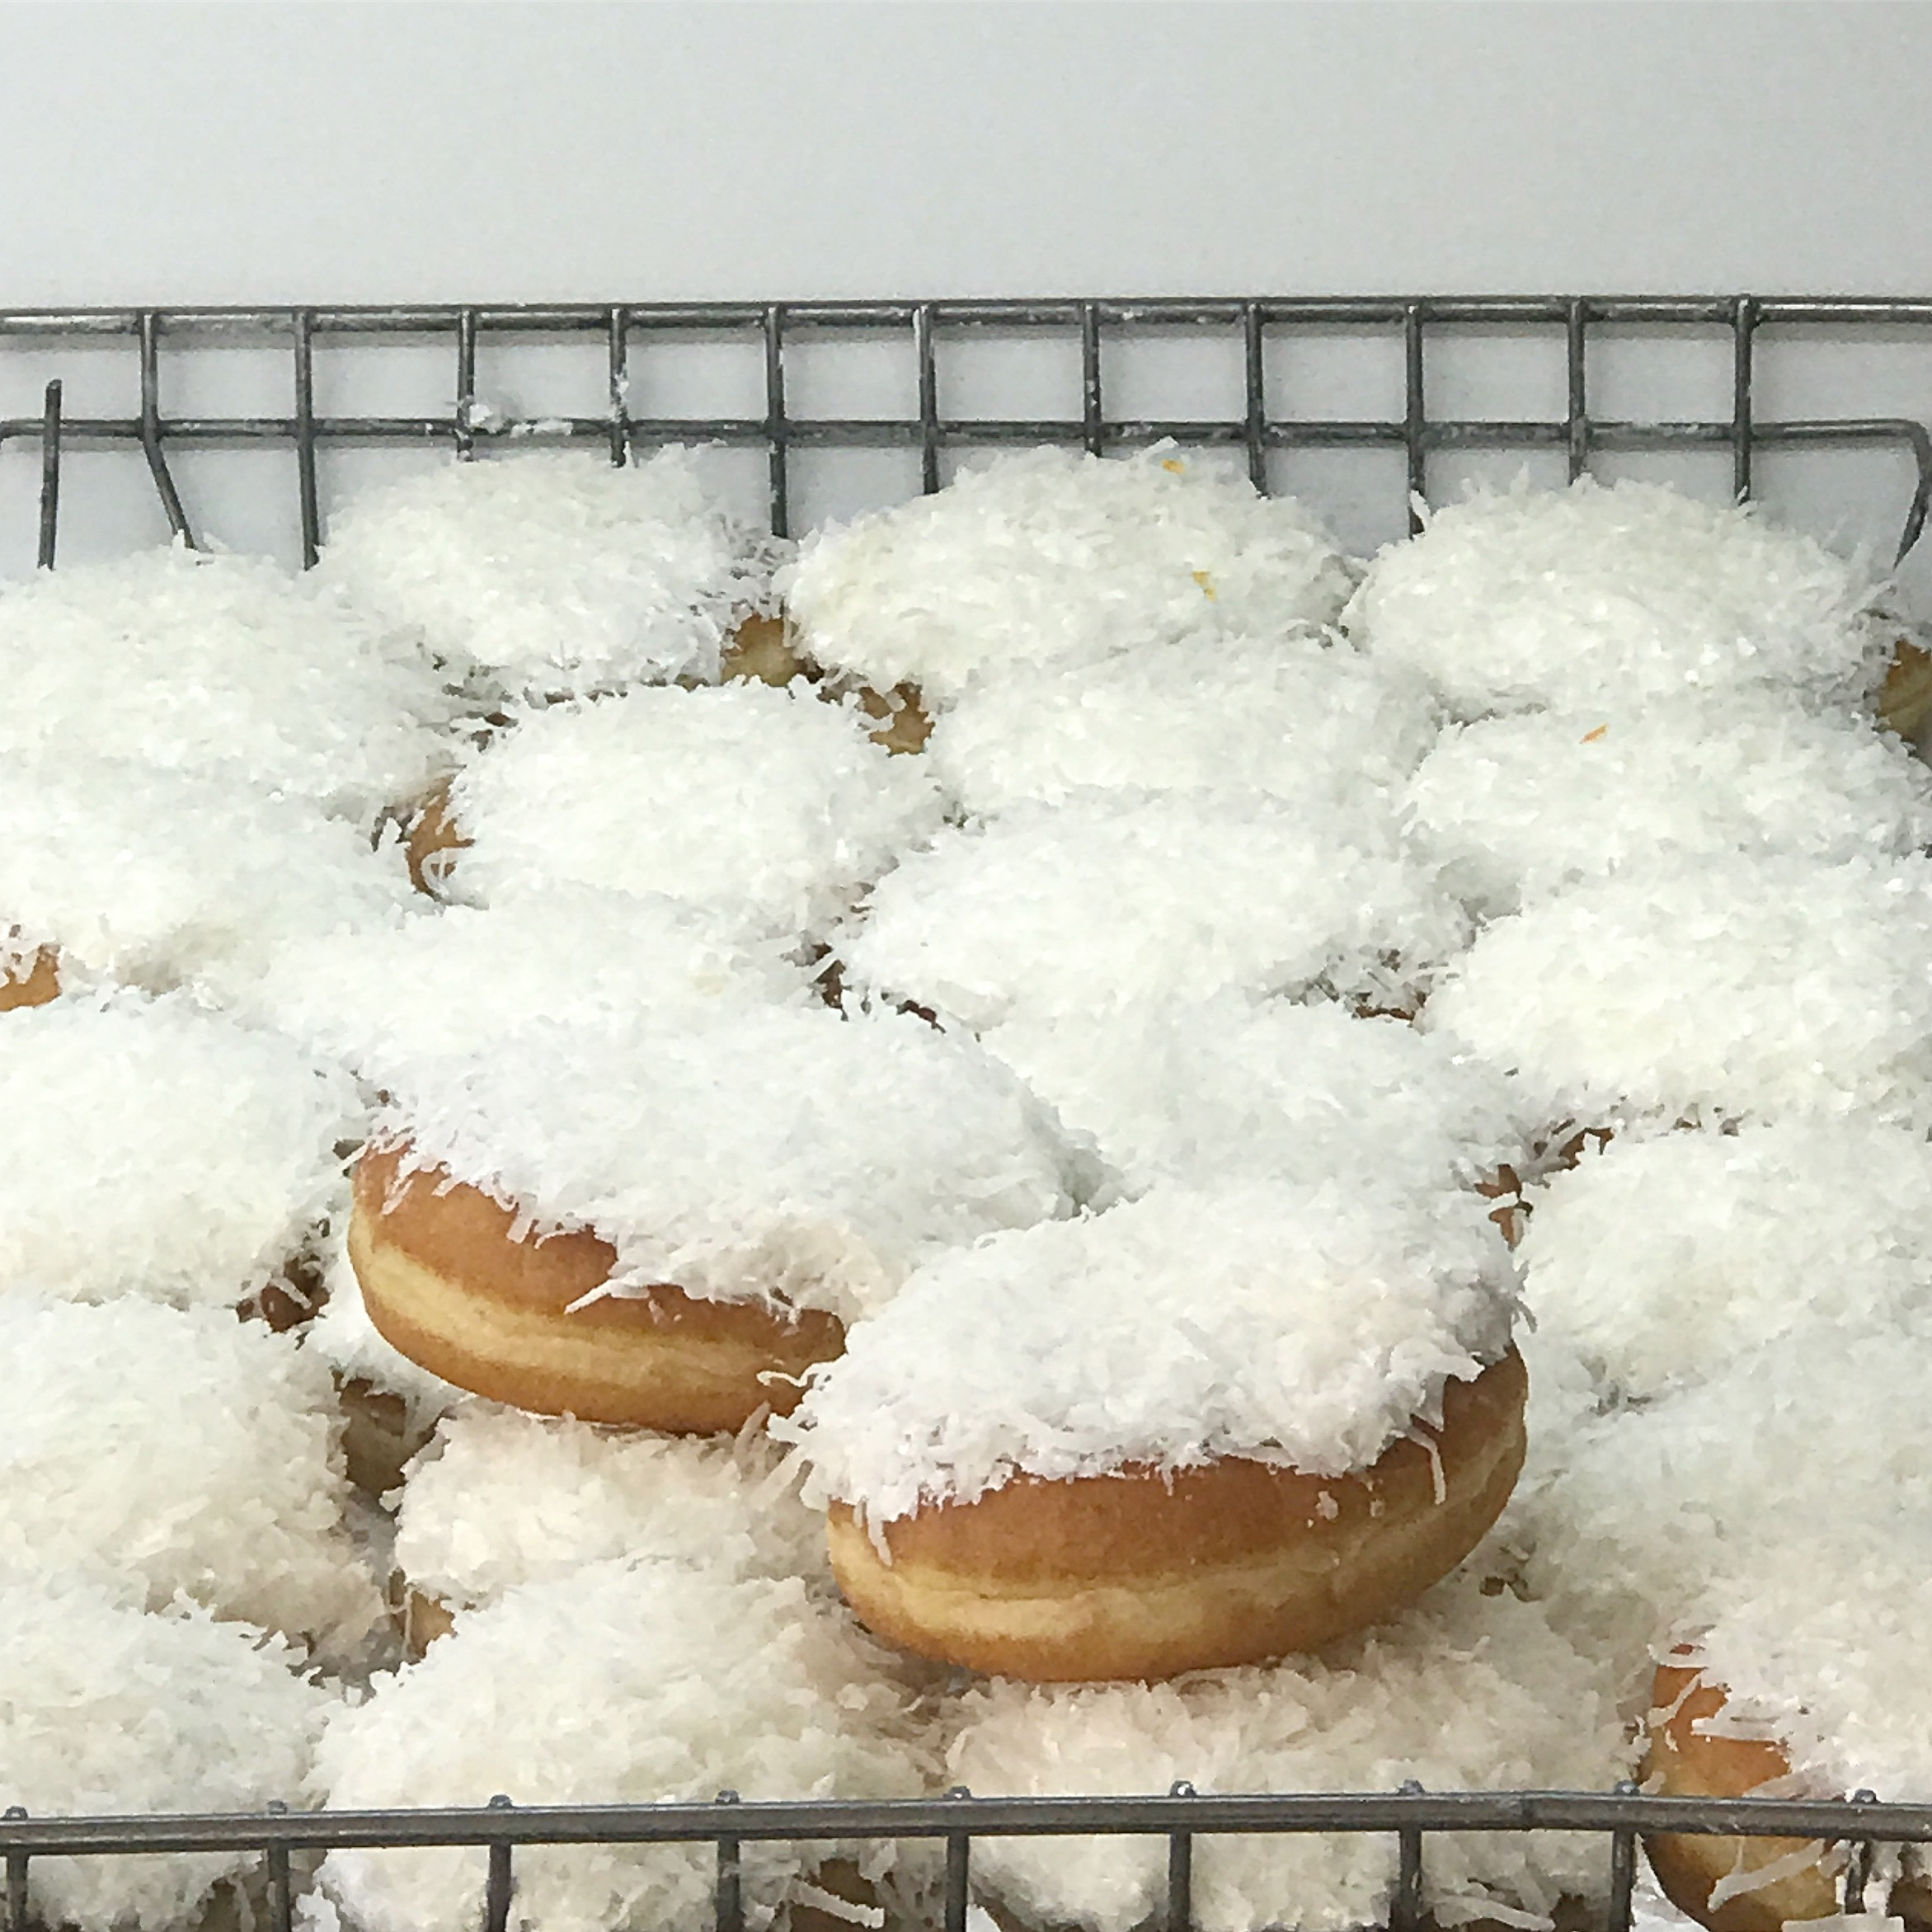 Stories of the month at Peter Pan Donuts